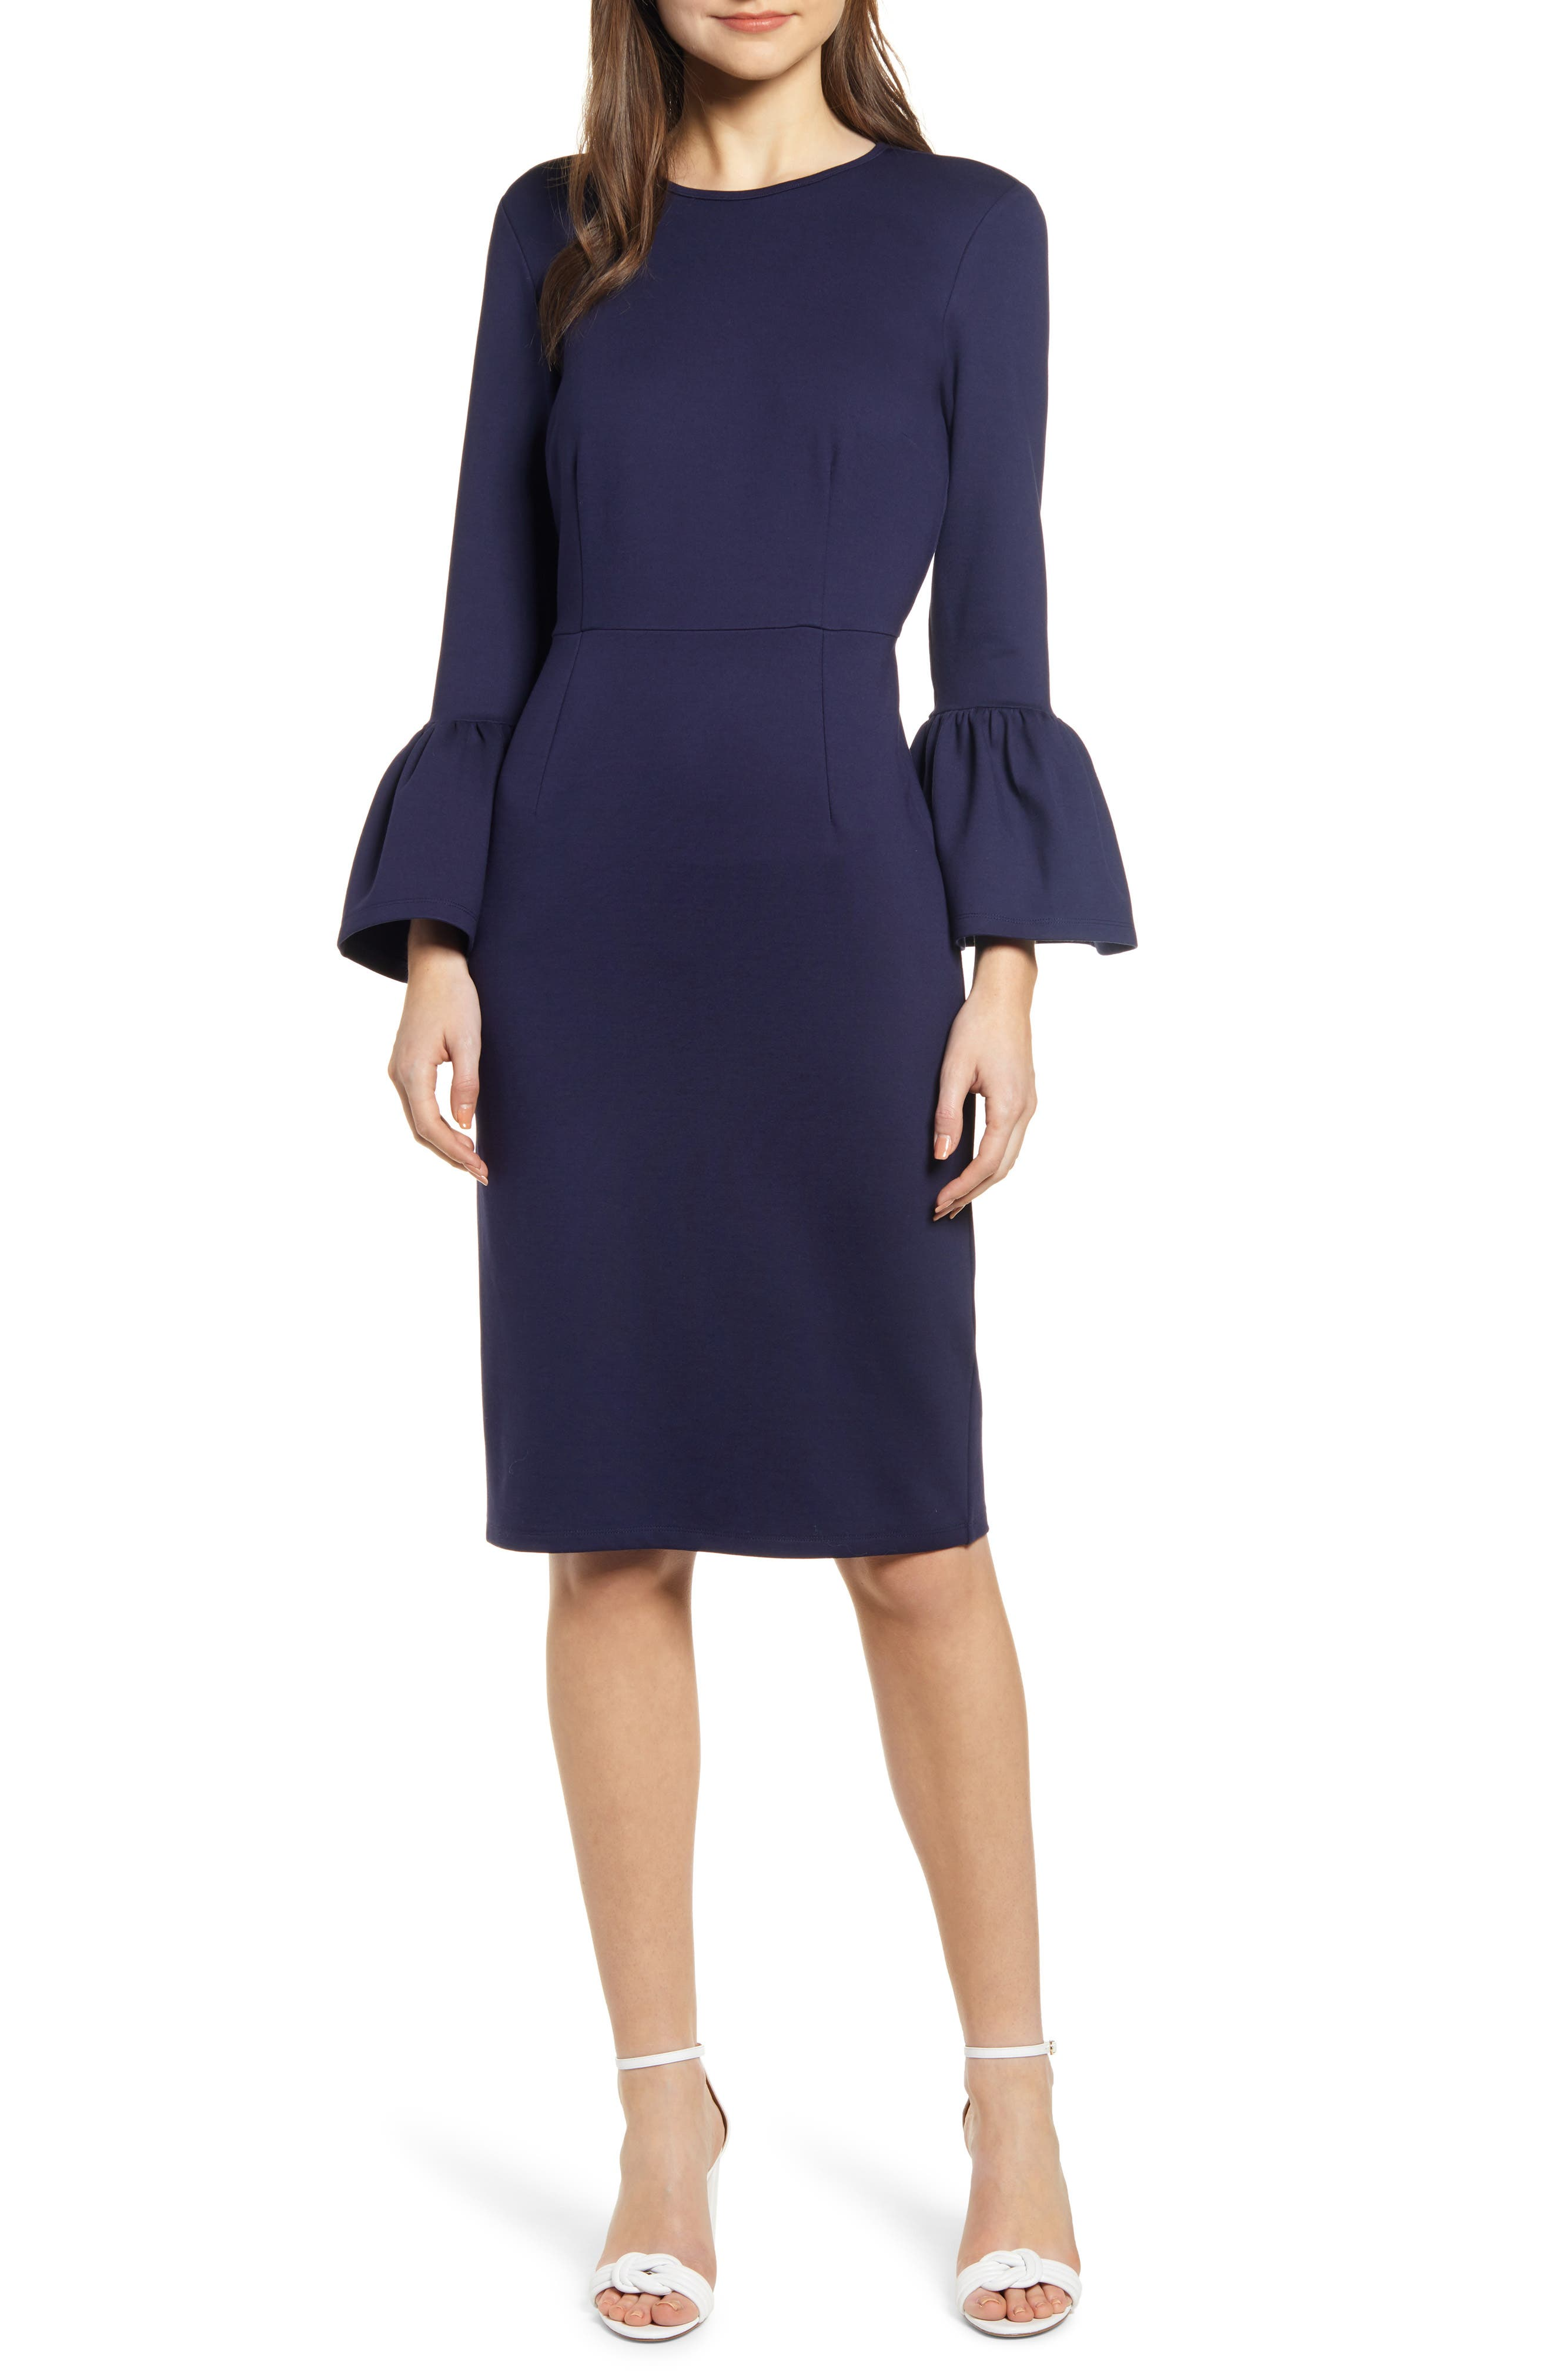 Rachel Parcell Bell Sleeve Sheath Dress, Blue (Nordstrom Exclusive)